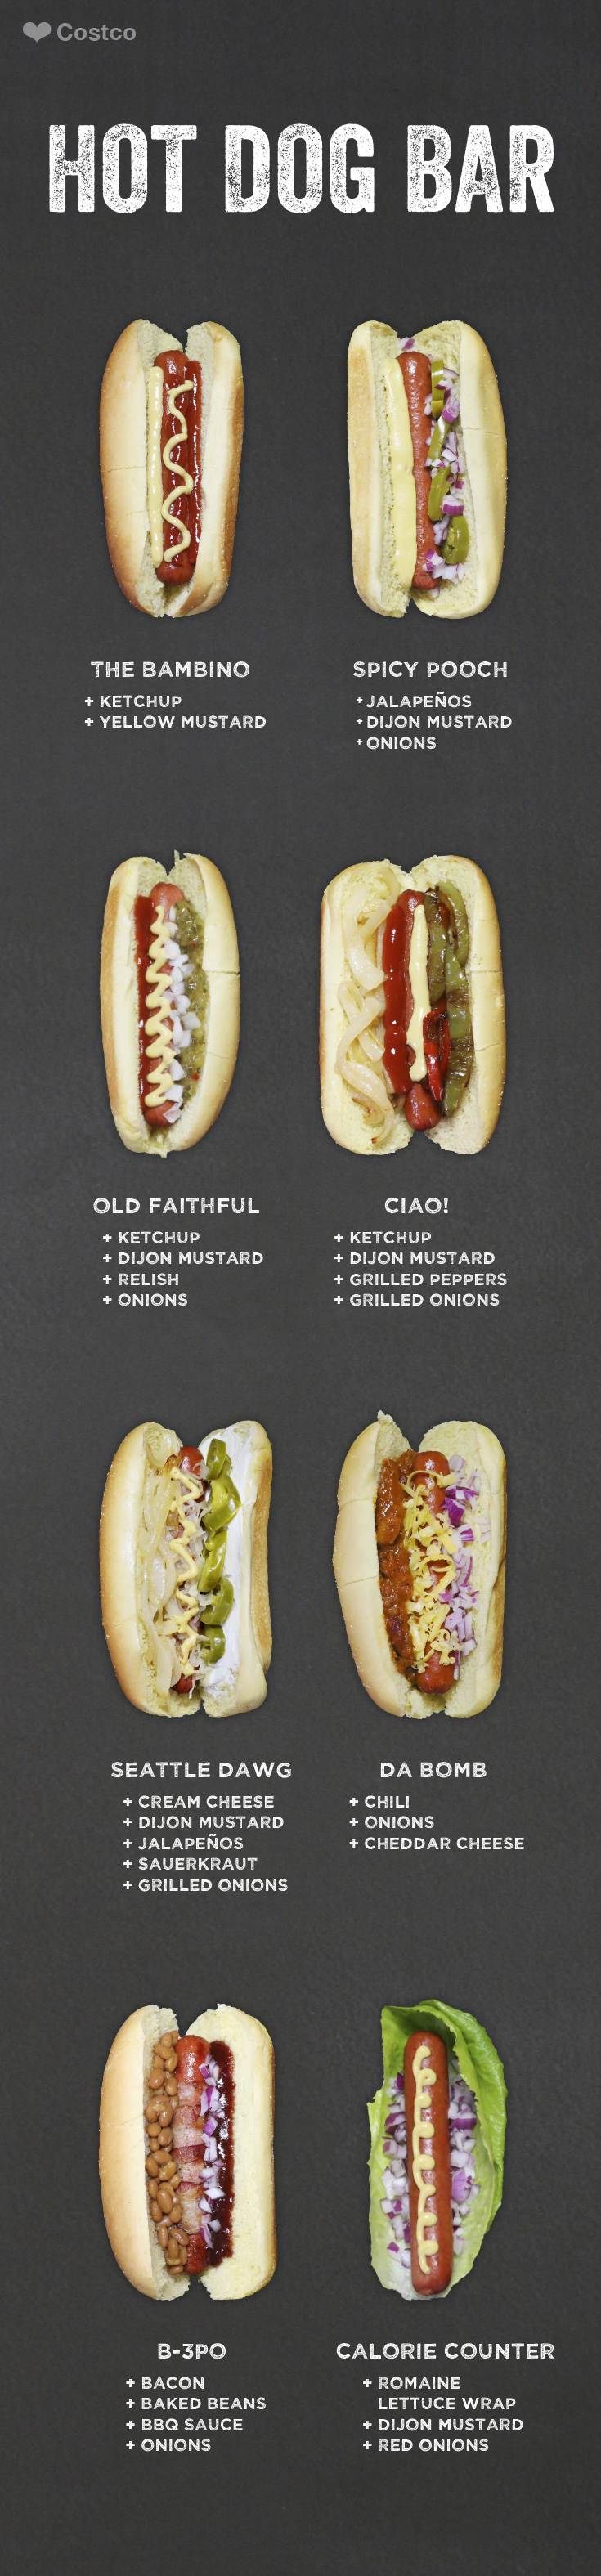 kirkland signature recipes recipe hot dog recipes buffet food dog recipes recipe hot dog recipes buffet food